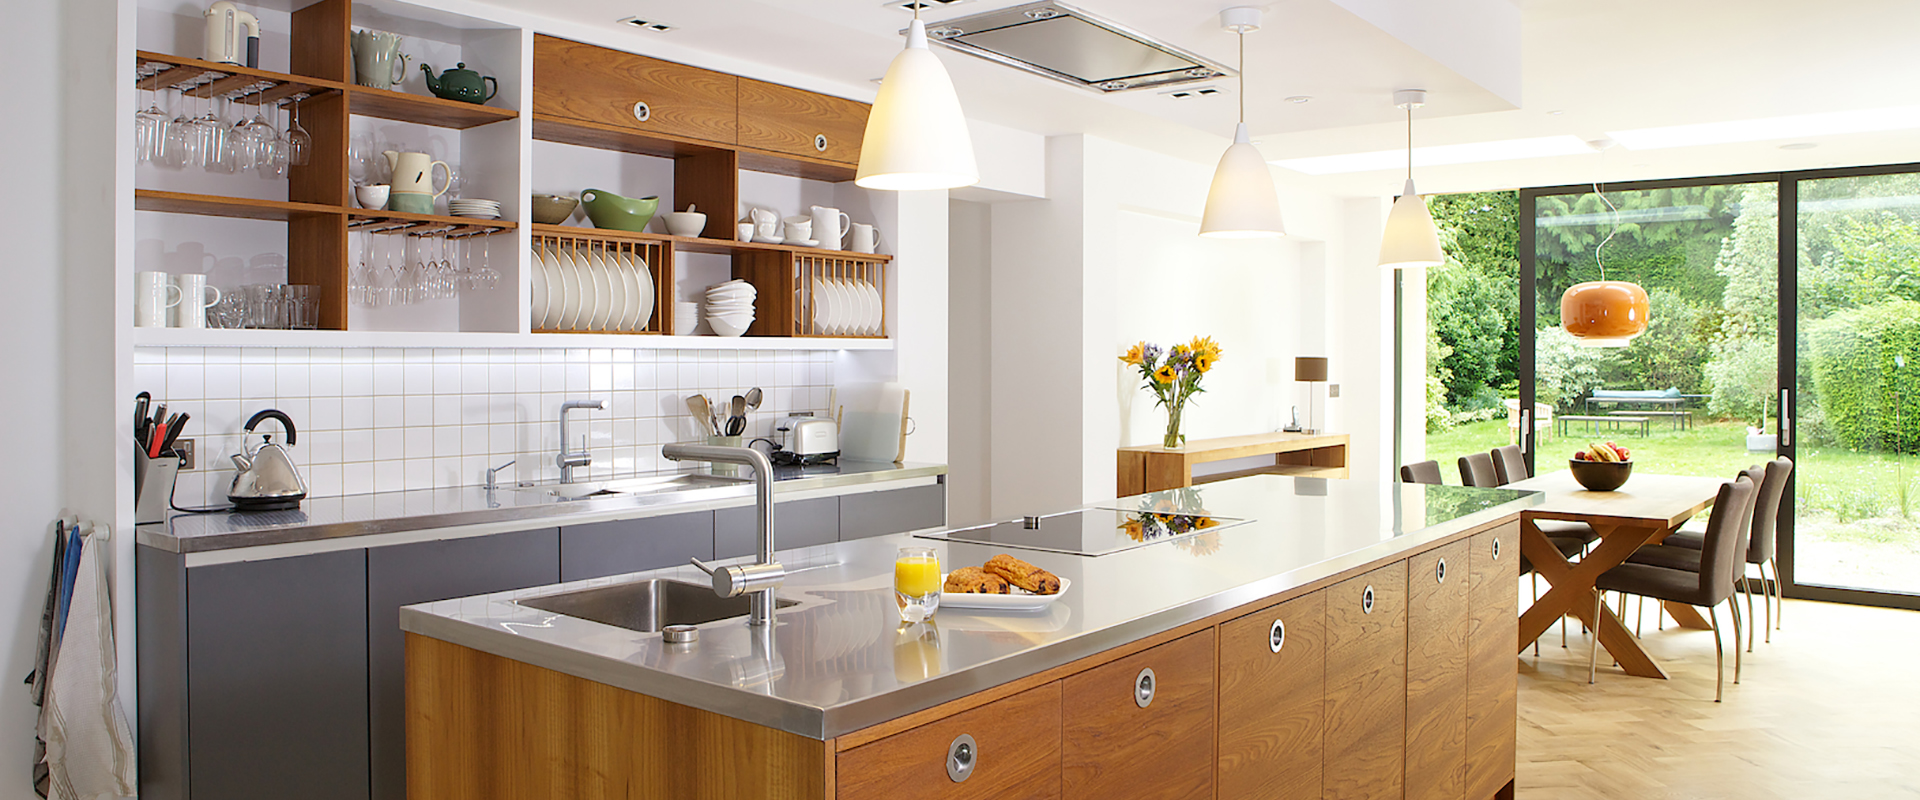 Bespoke Fully Fitted Stainless Steel Kitchen